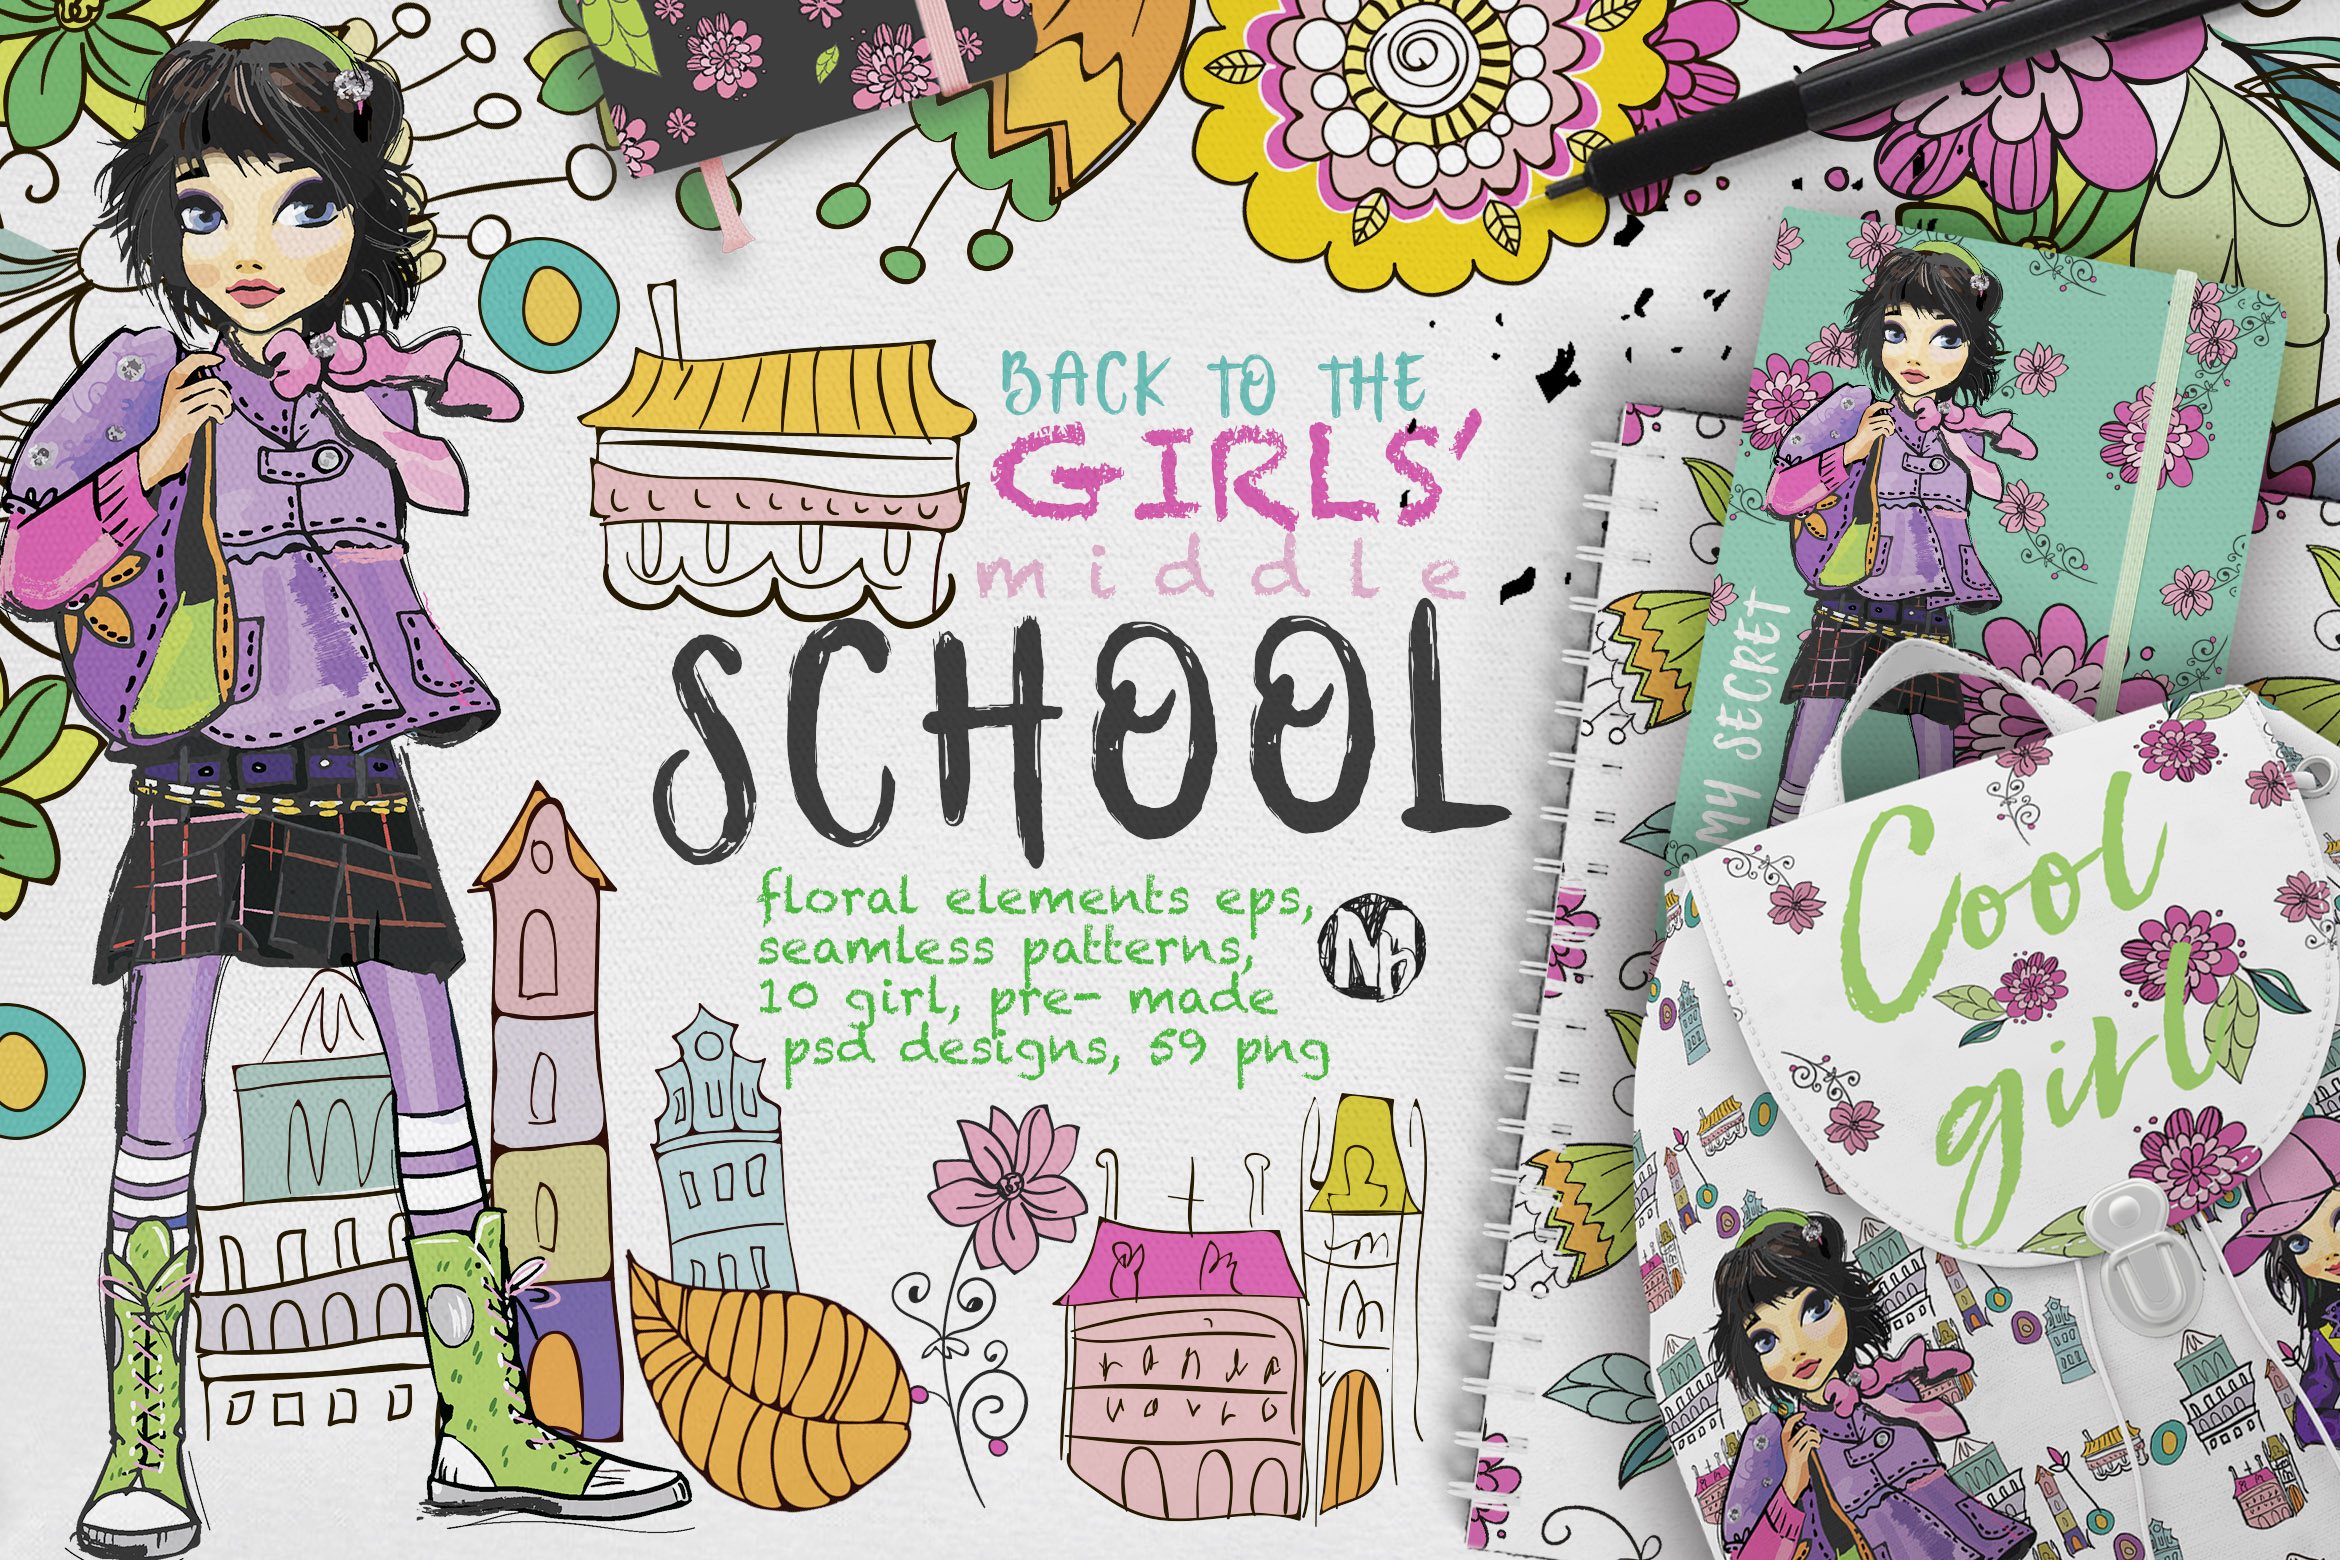 BACK TO THE GIRLS' MIDDLE SCHOOL example image 1